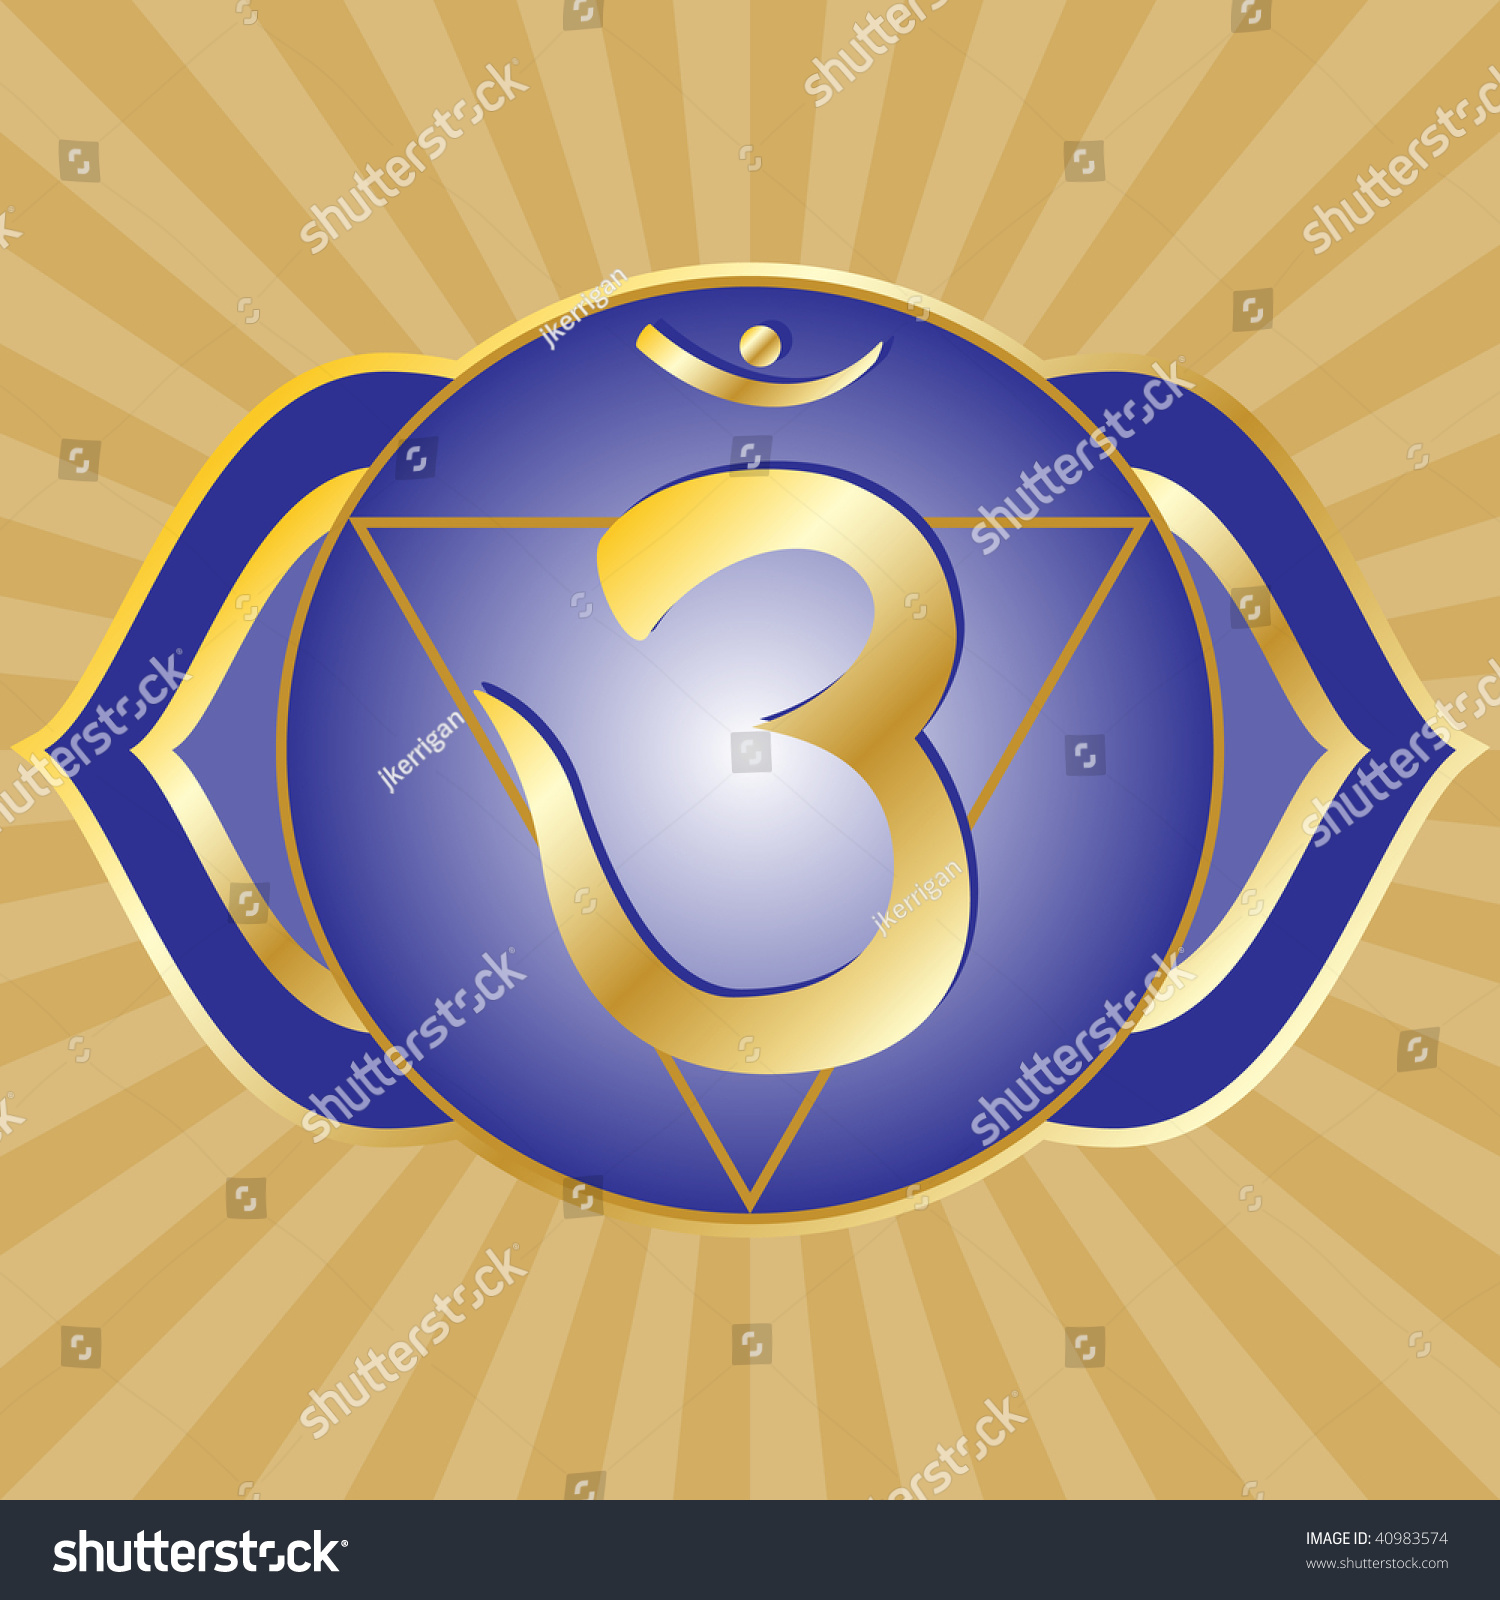 Chakra Series Ajna Third Eye Chakra Stock Illustration 40983574